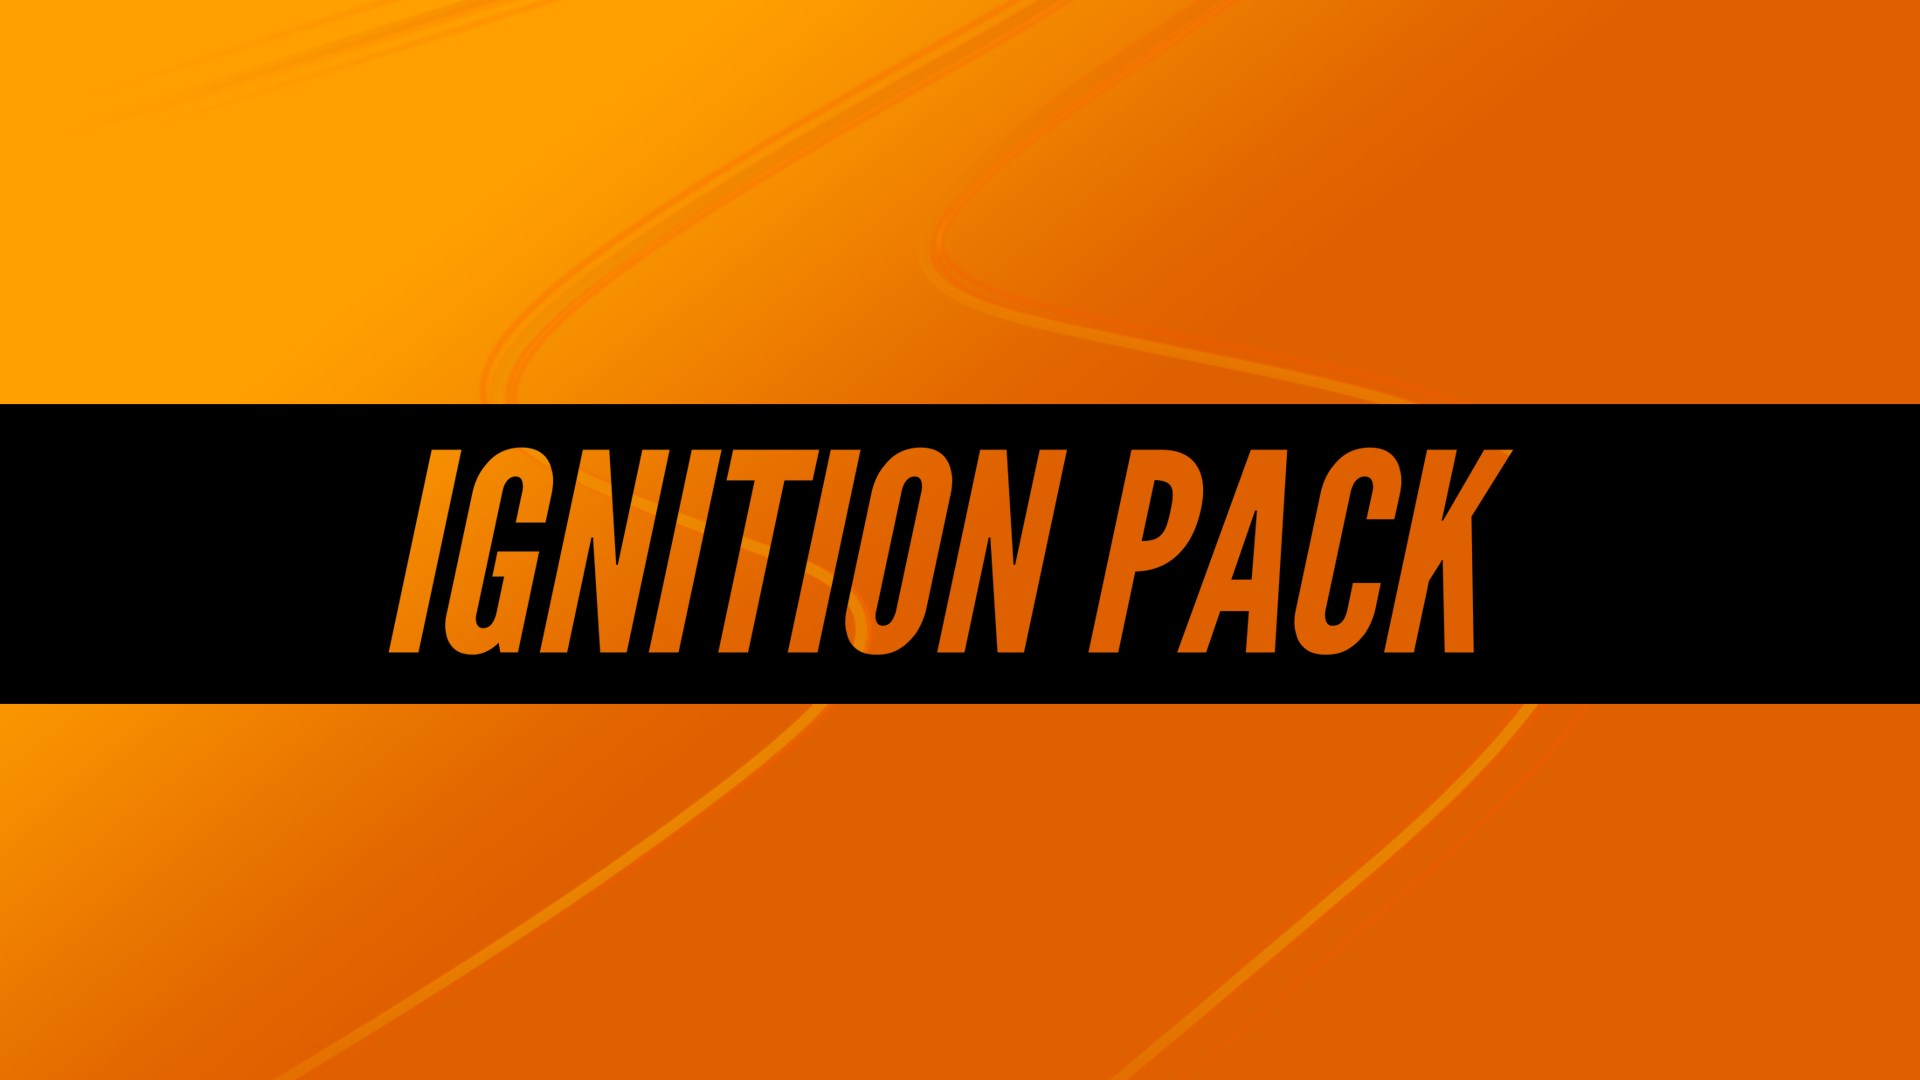 Project CARS 3: Ignition Pack